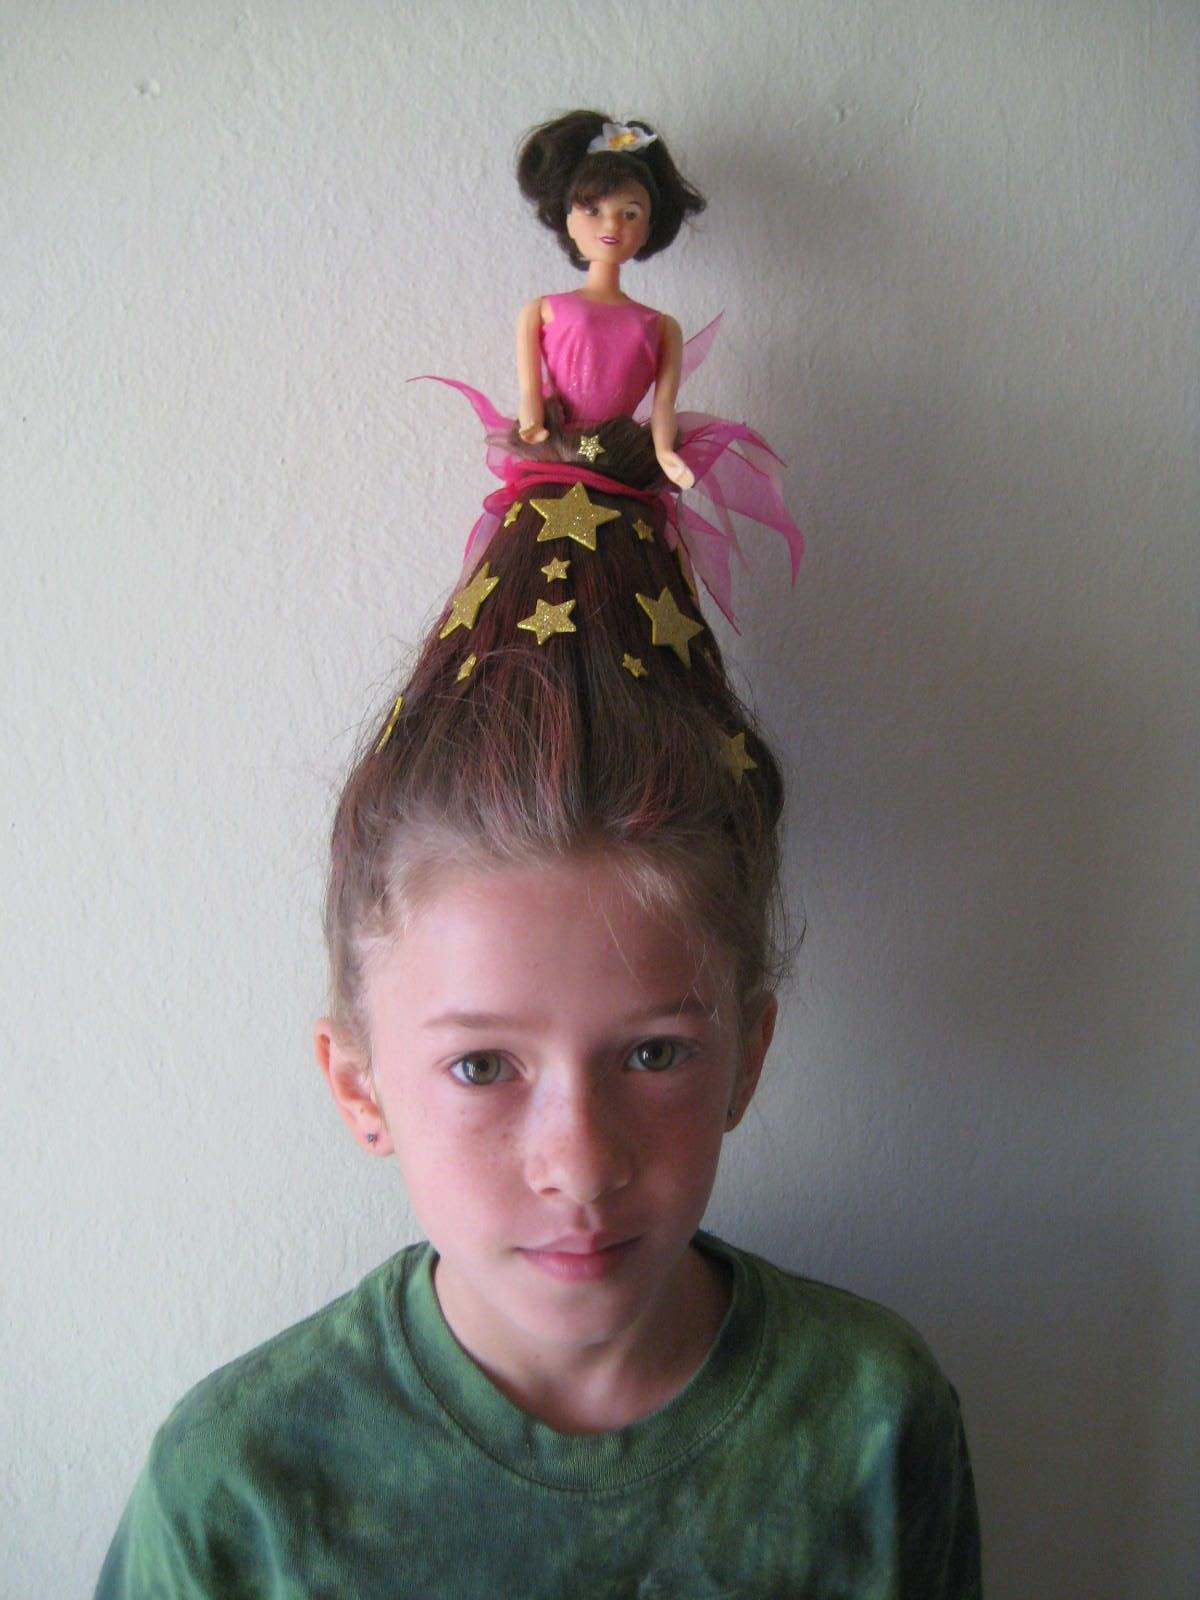 ideas for crazy hair day. barbie with dress made out of hair